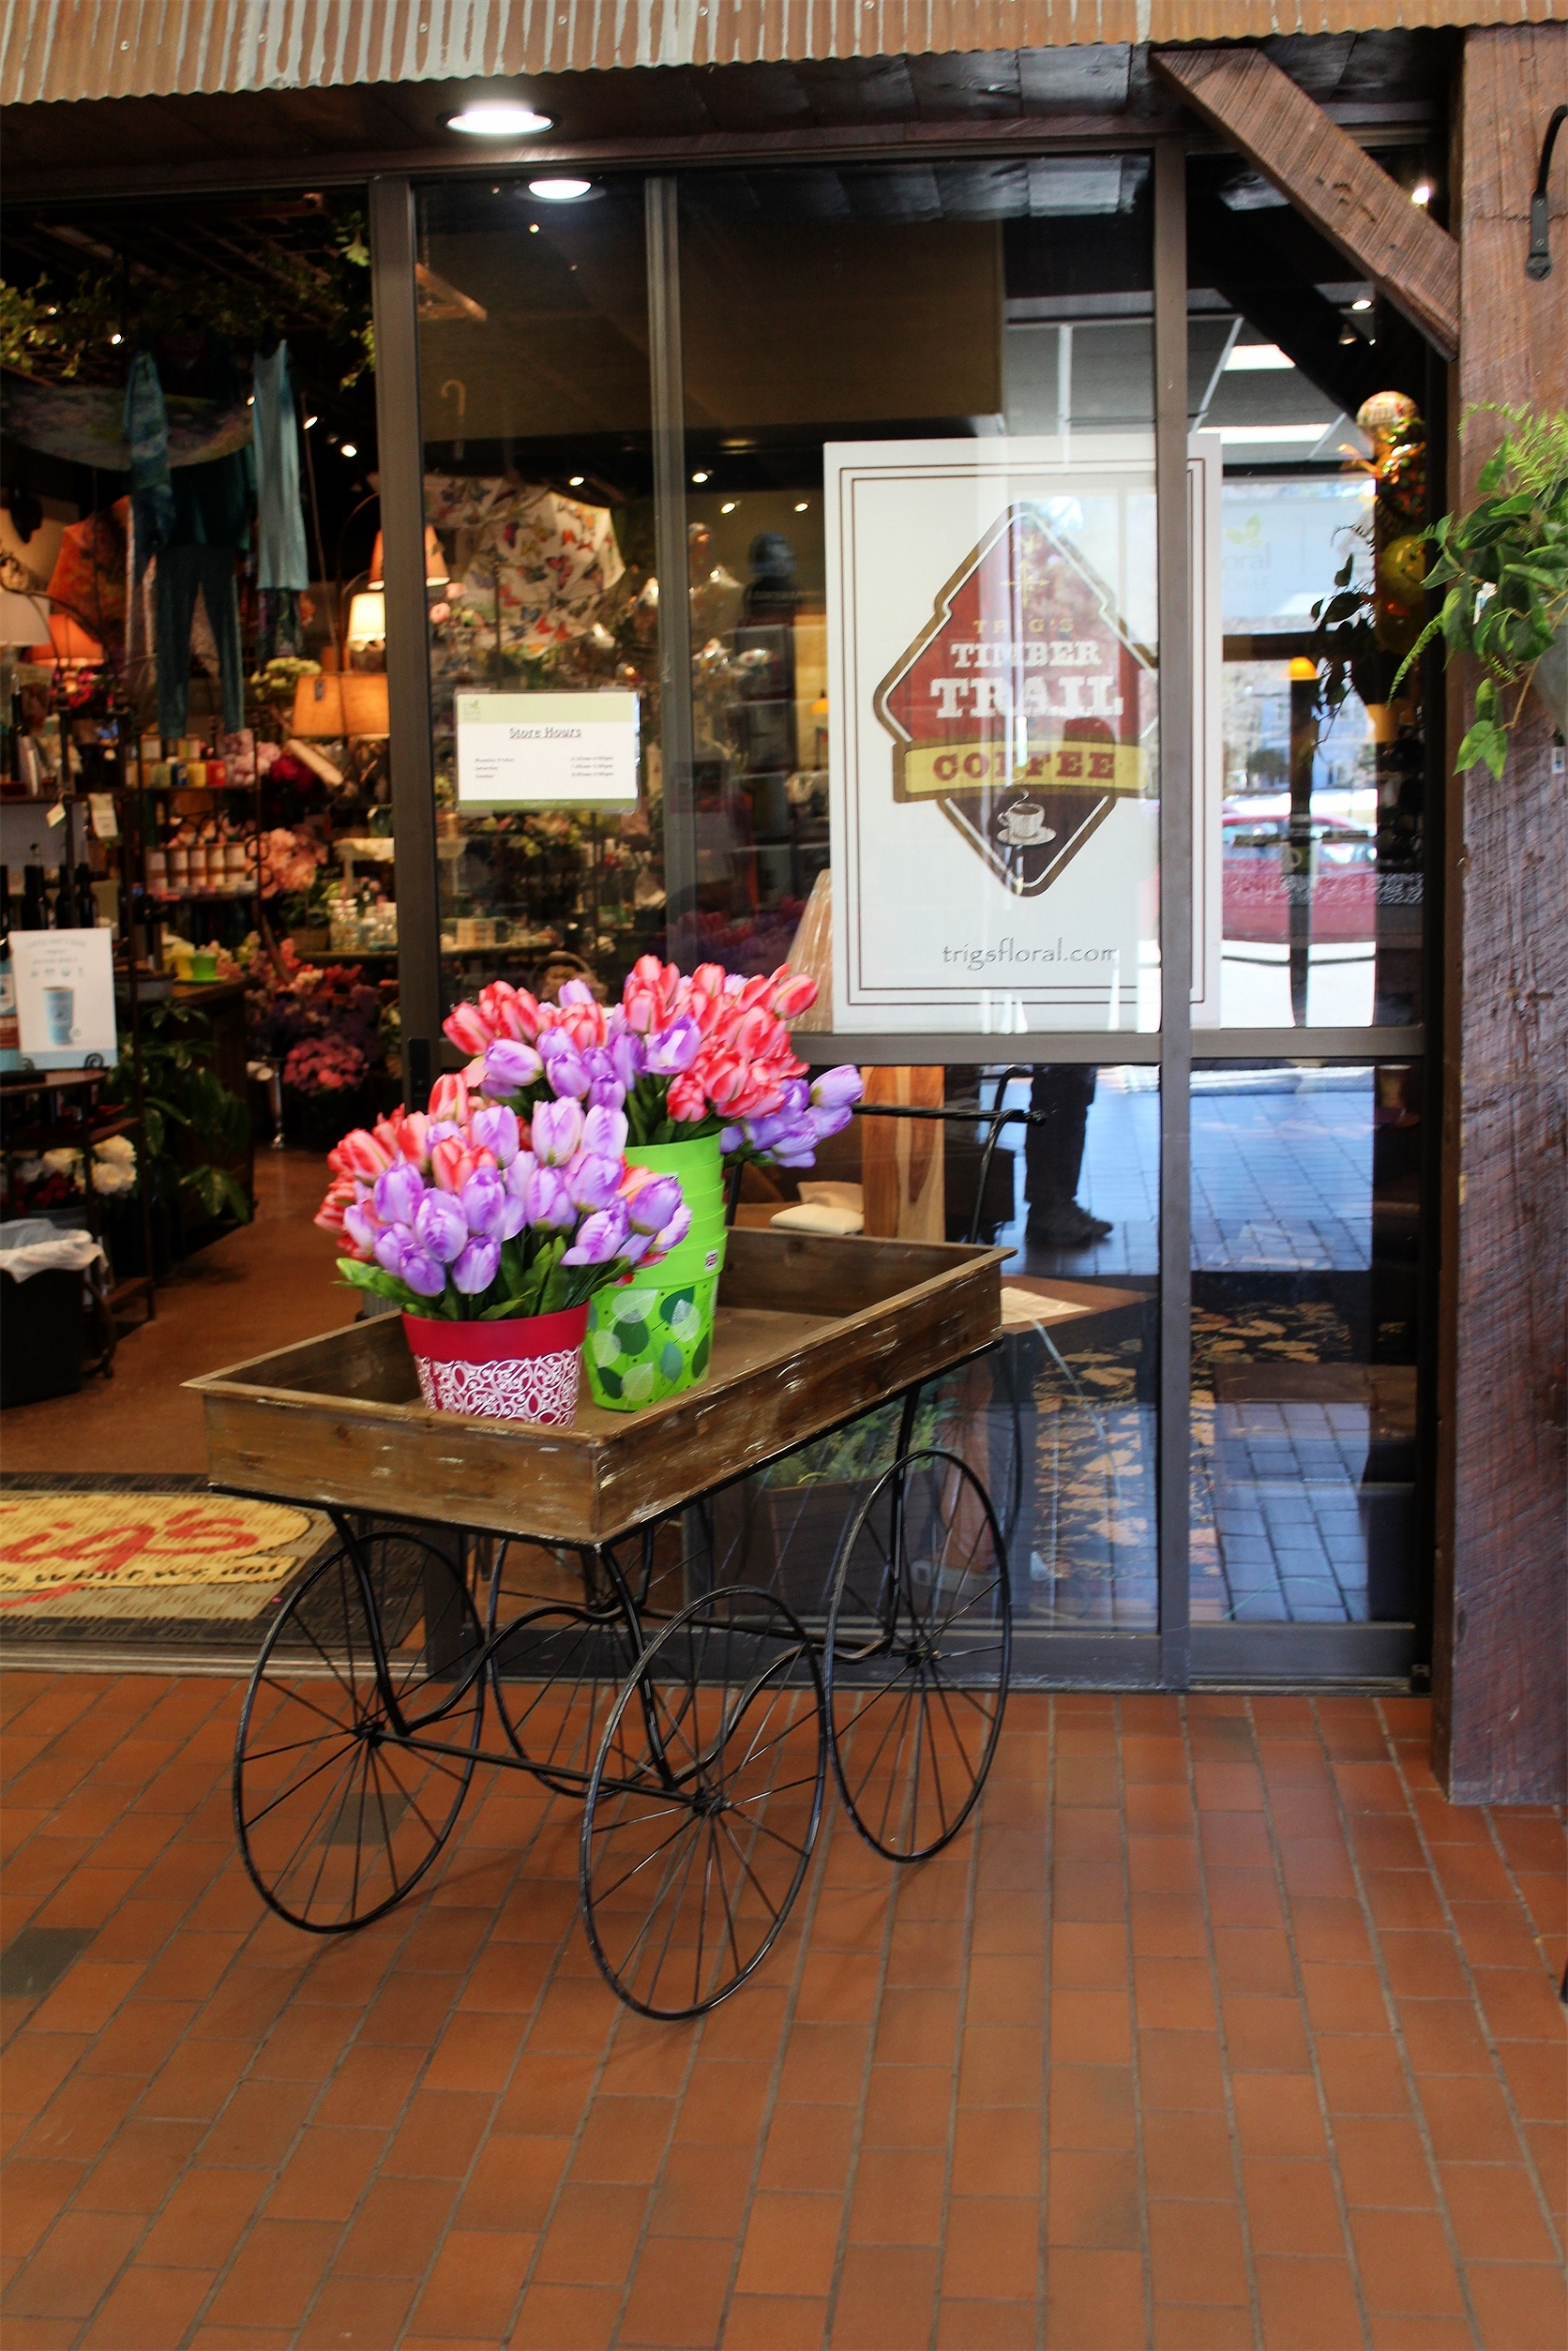 Colorful tulips welcome customers into Trig's Timber Trail Coffee and Trig's Floral Shop in Minocqua. Kim Johnson photo